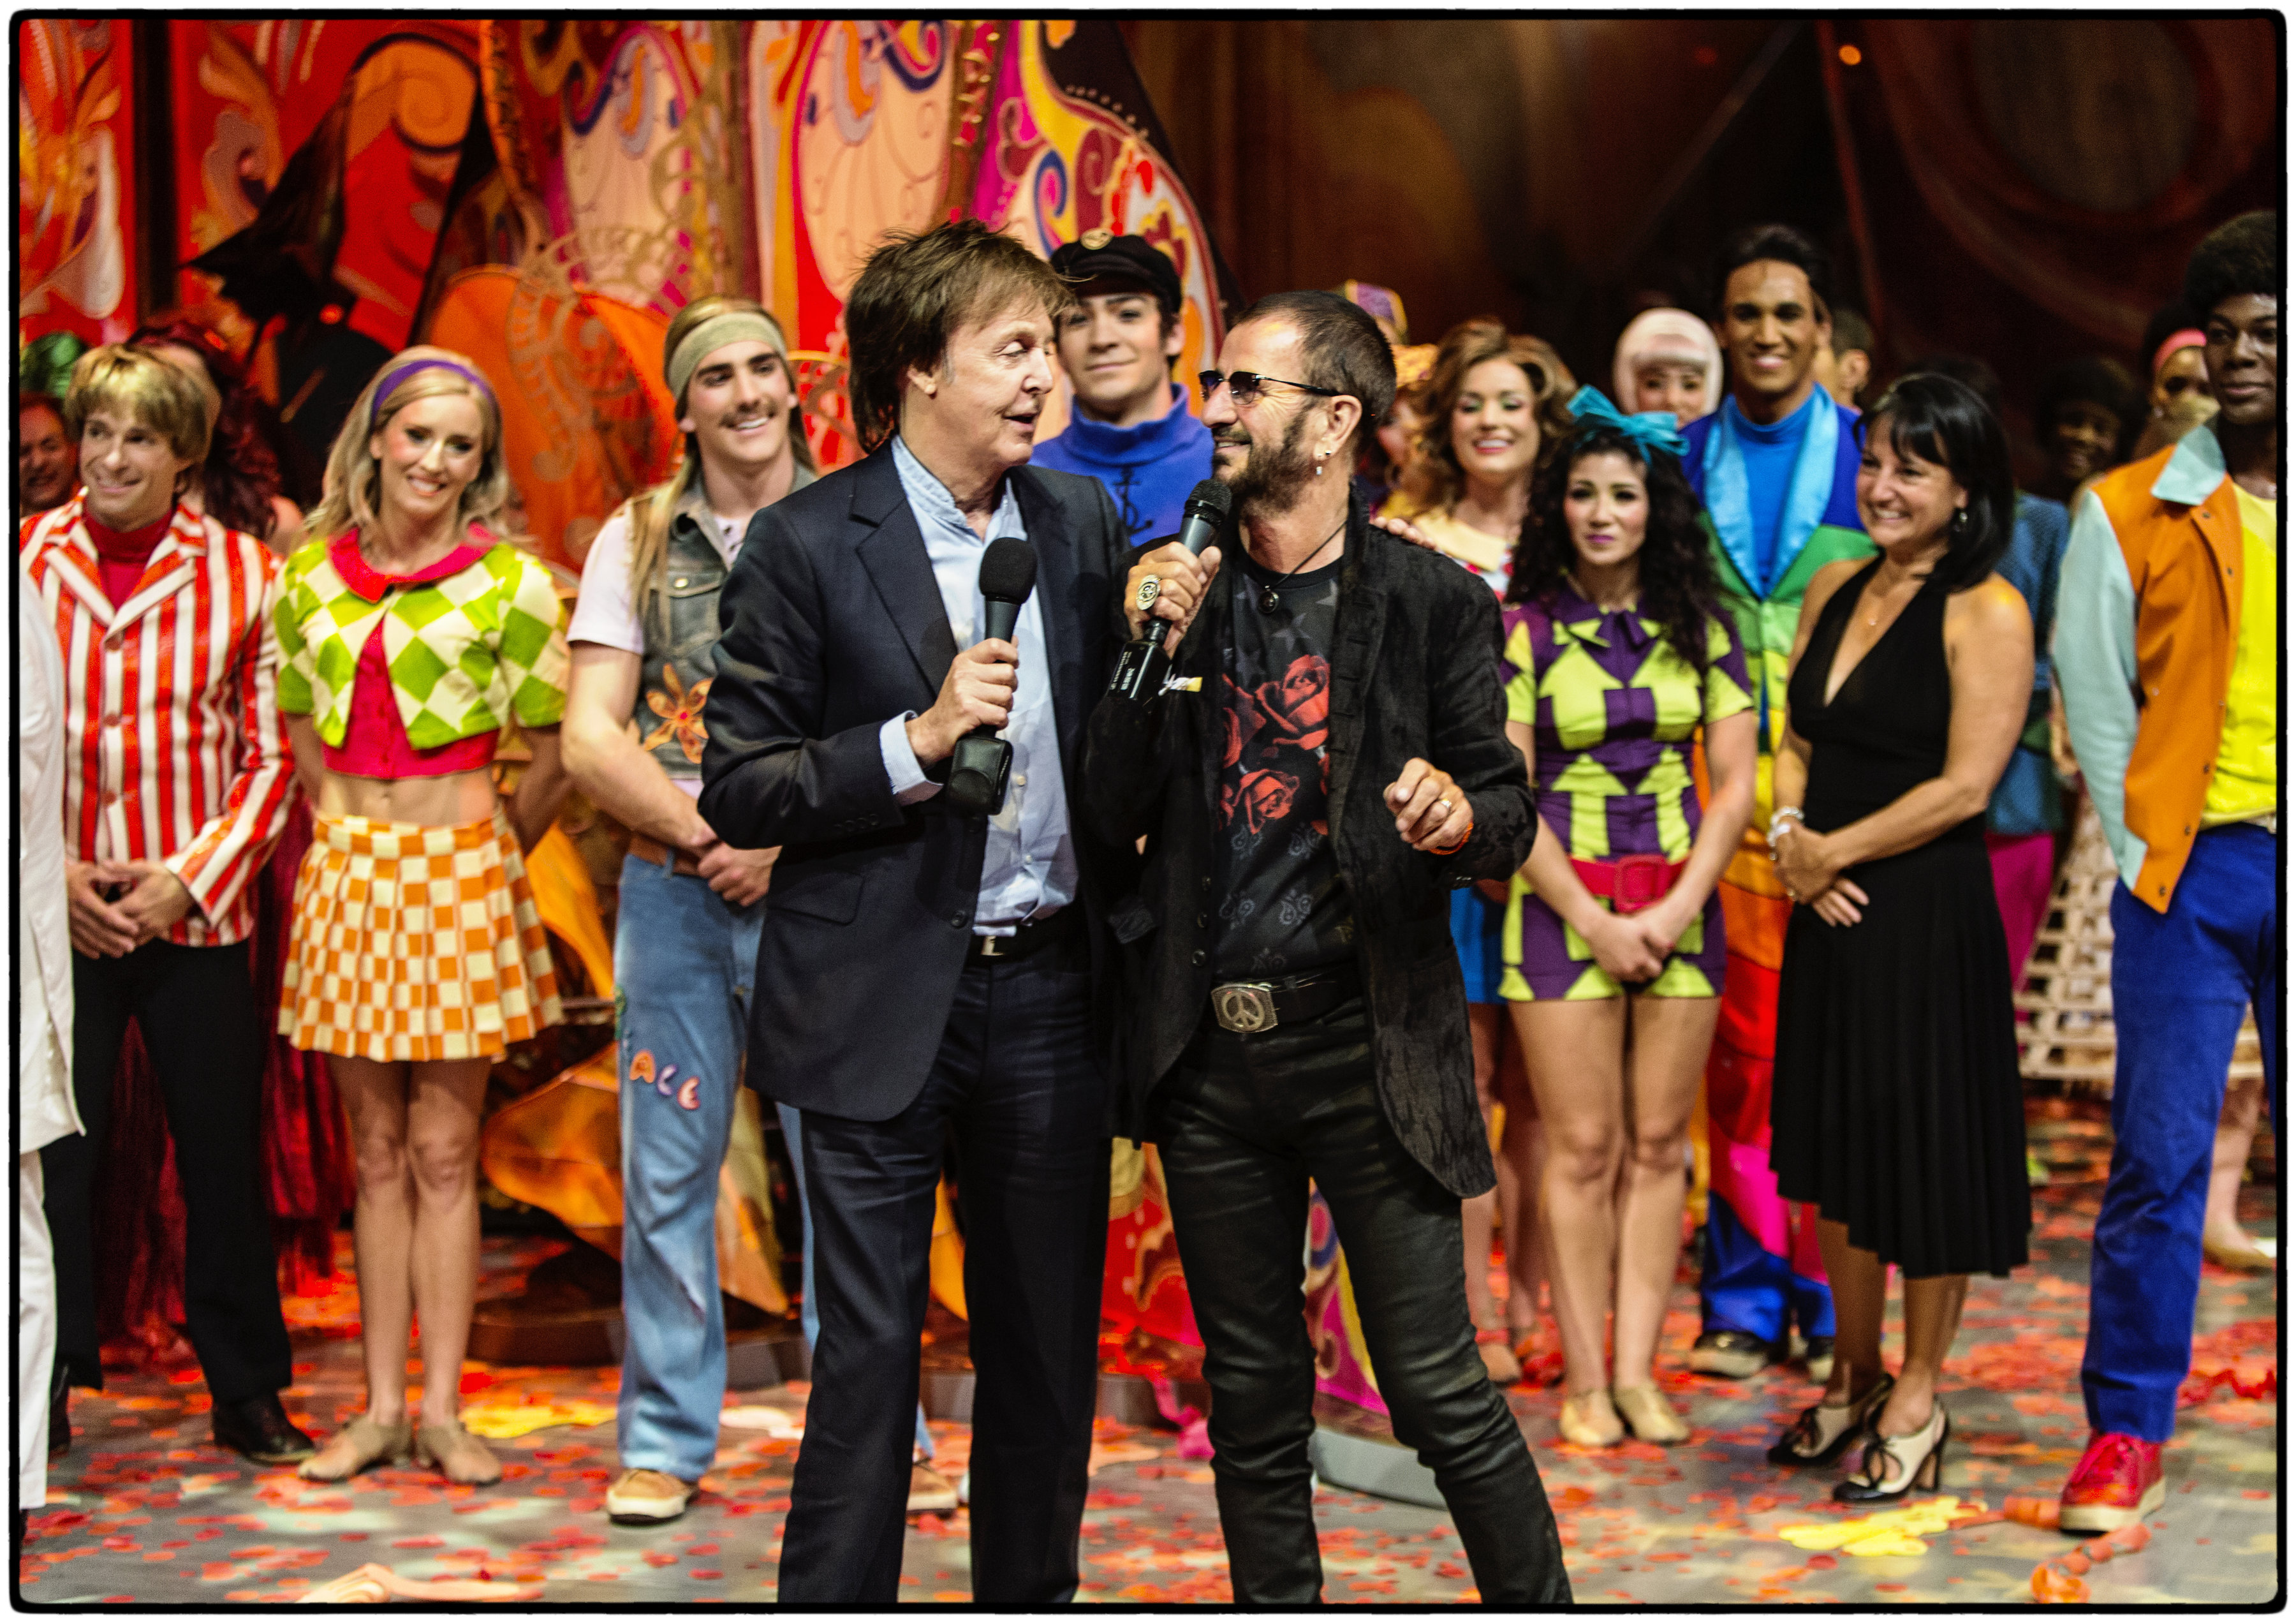 Beatles Love Show 10th Anniversary